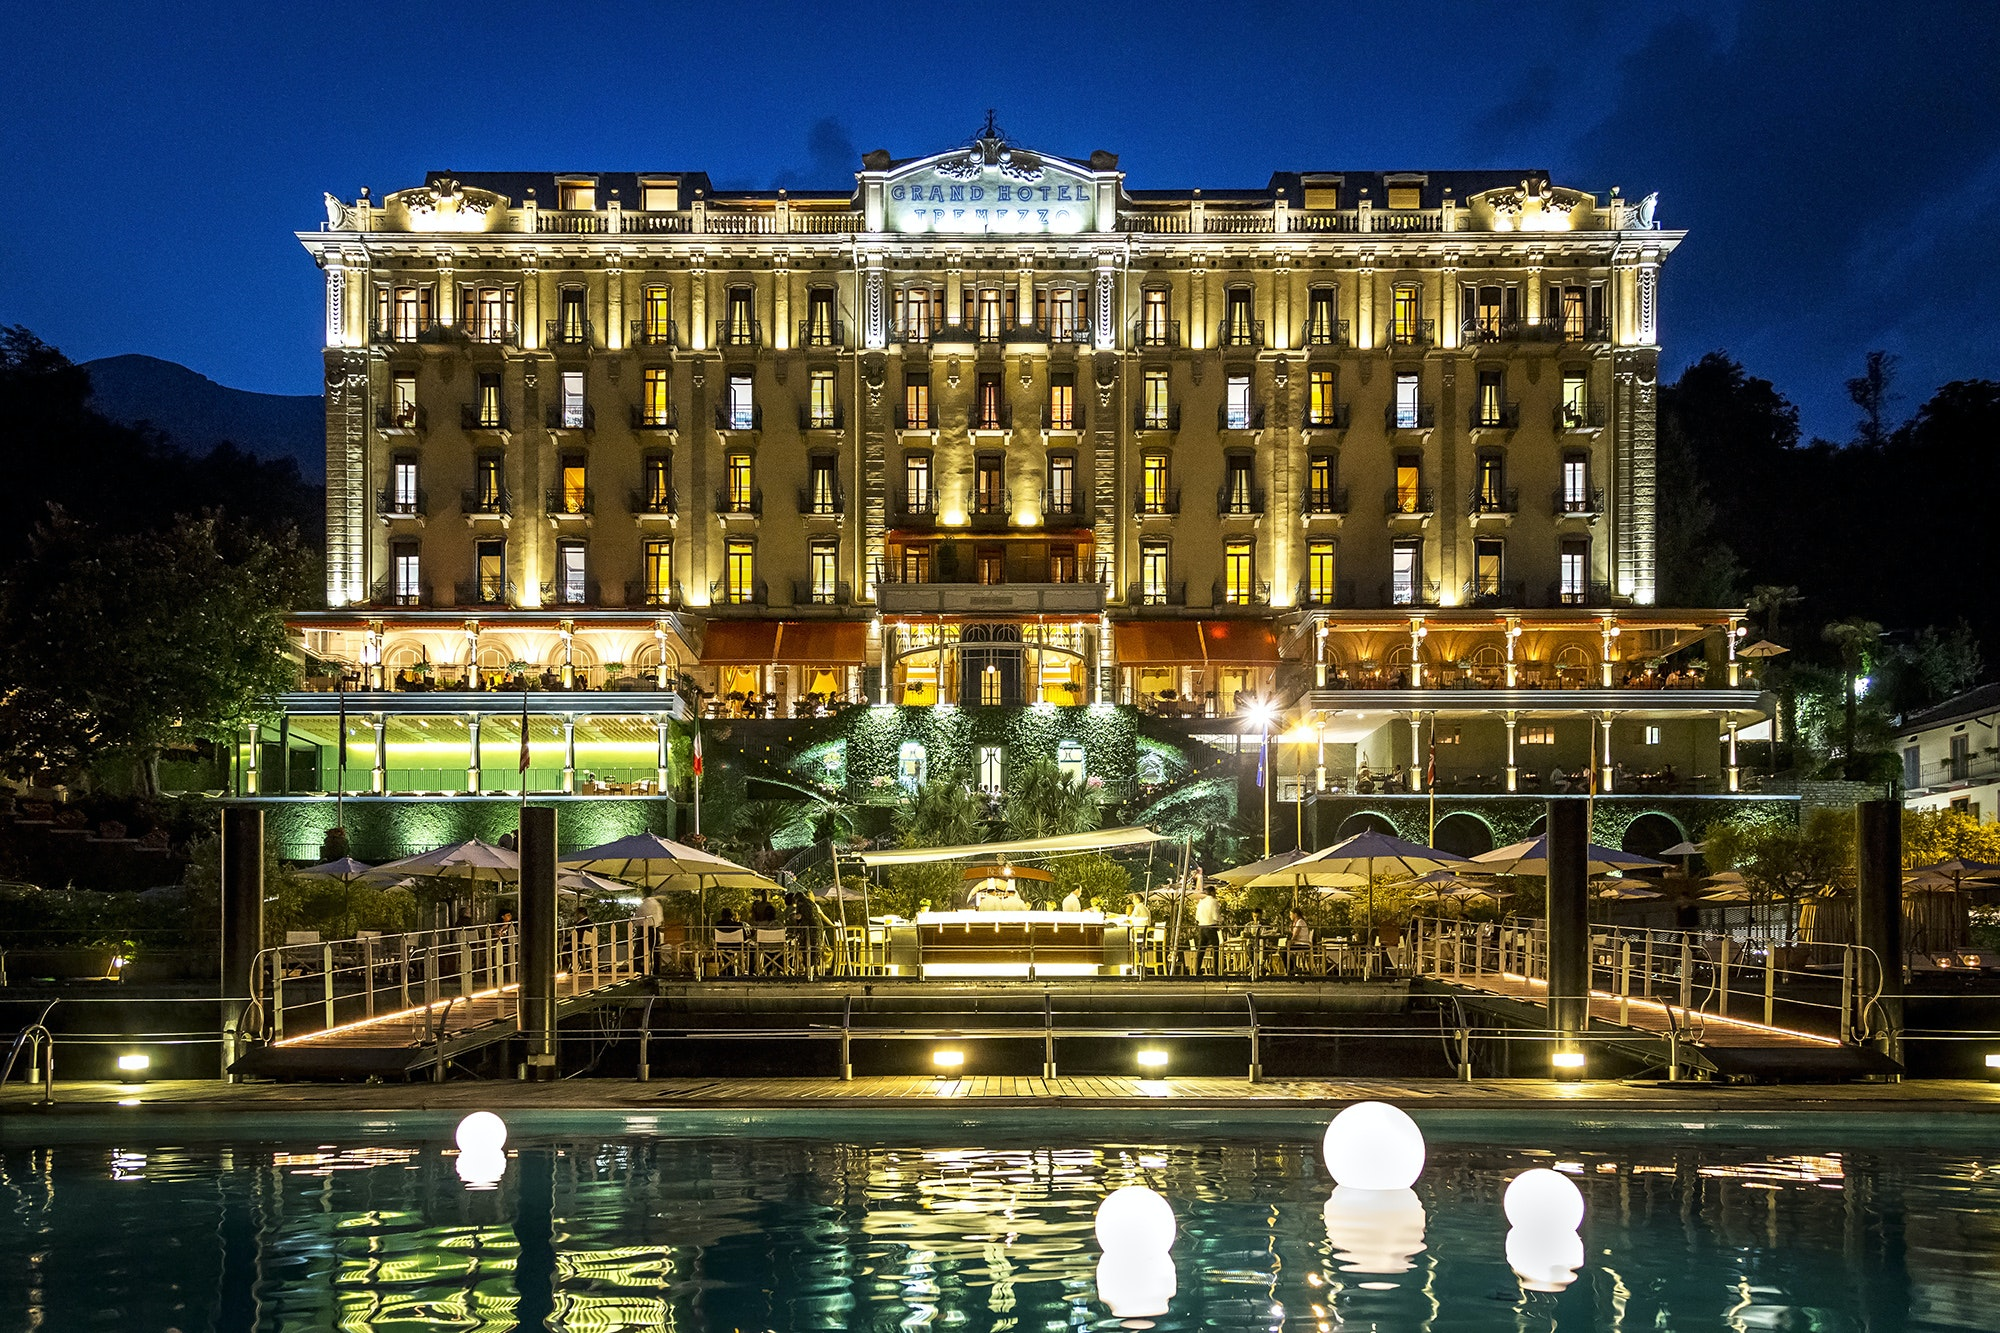 The gorgeous hotel was built in the belle epoque style.